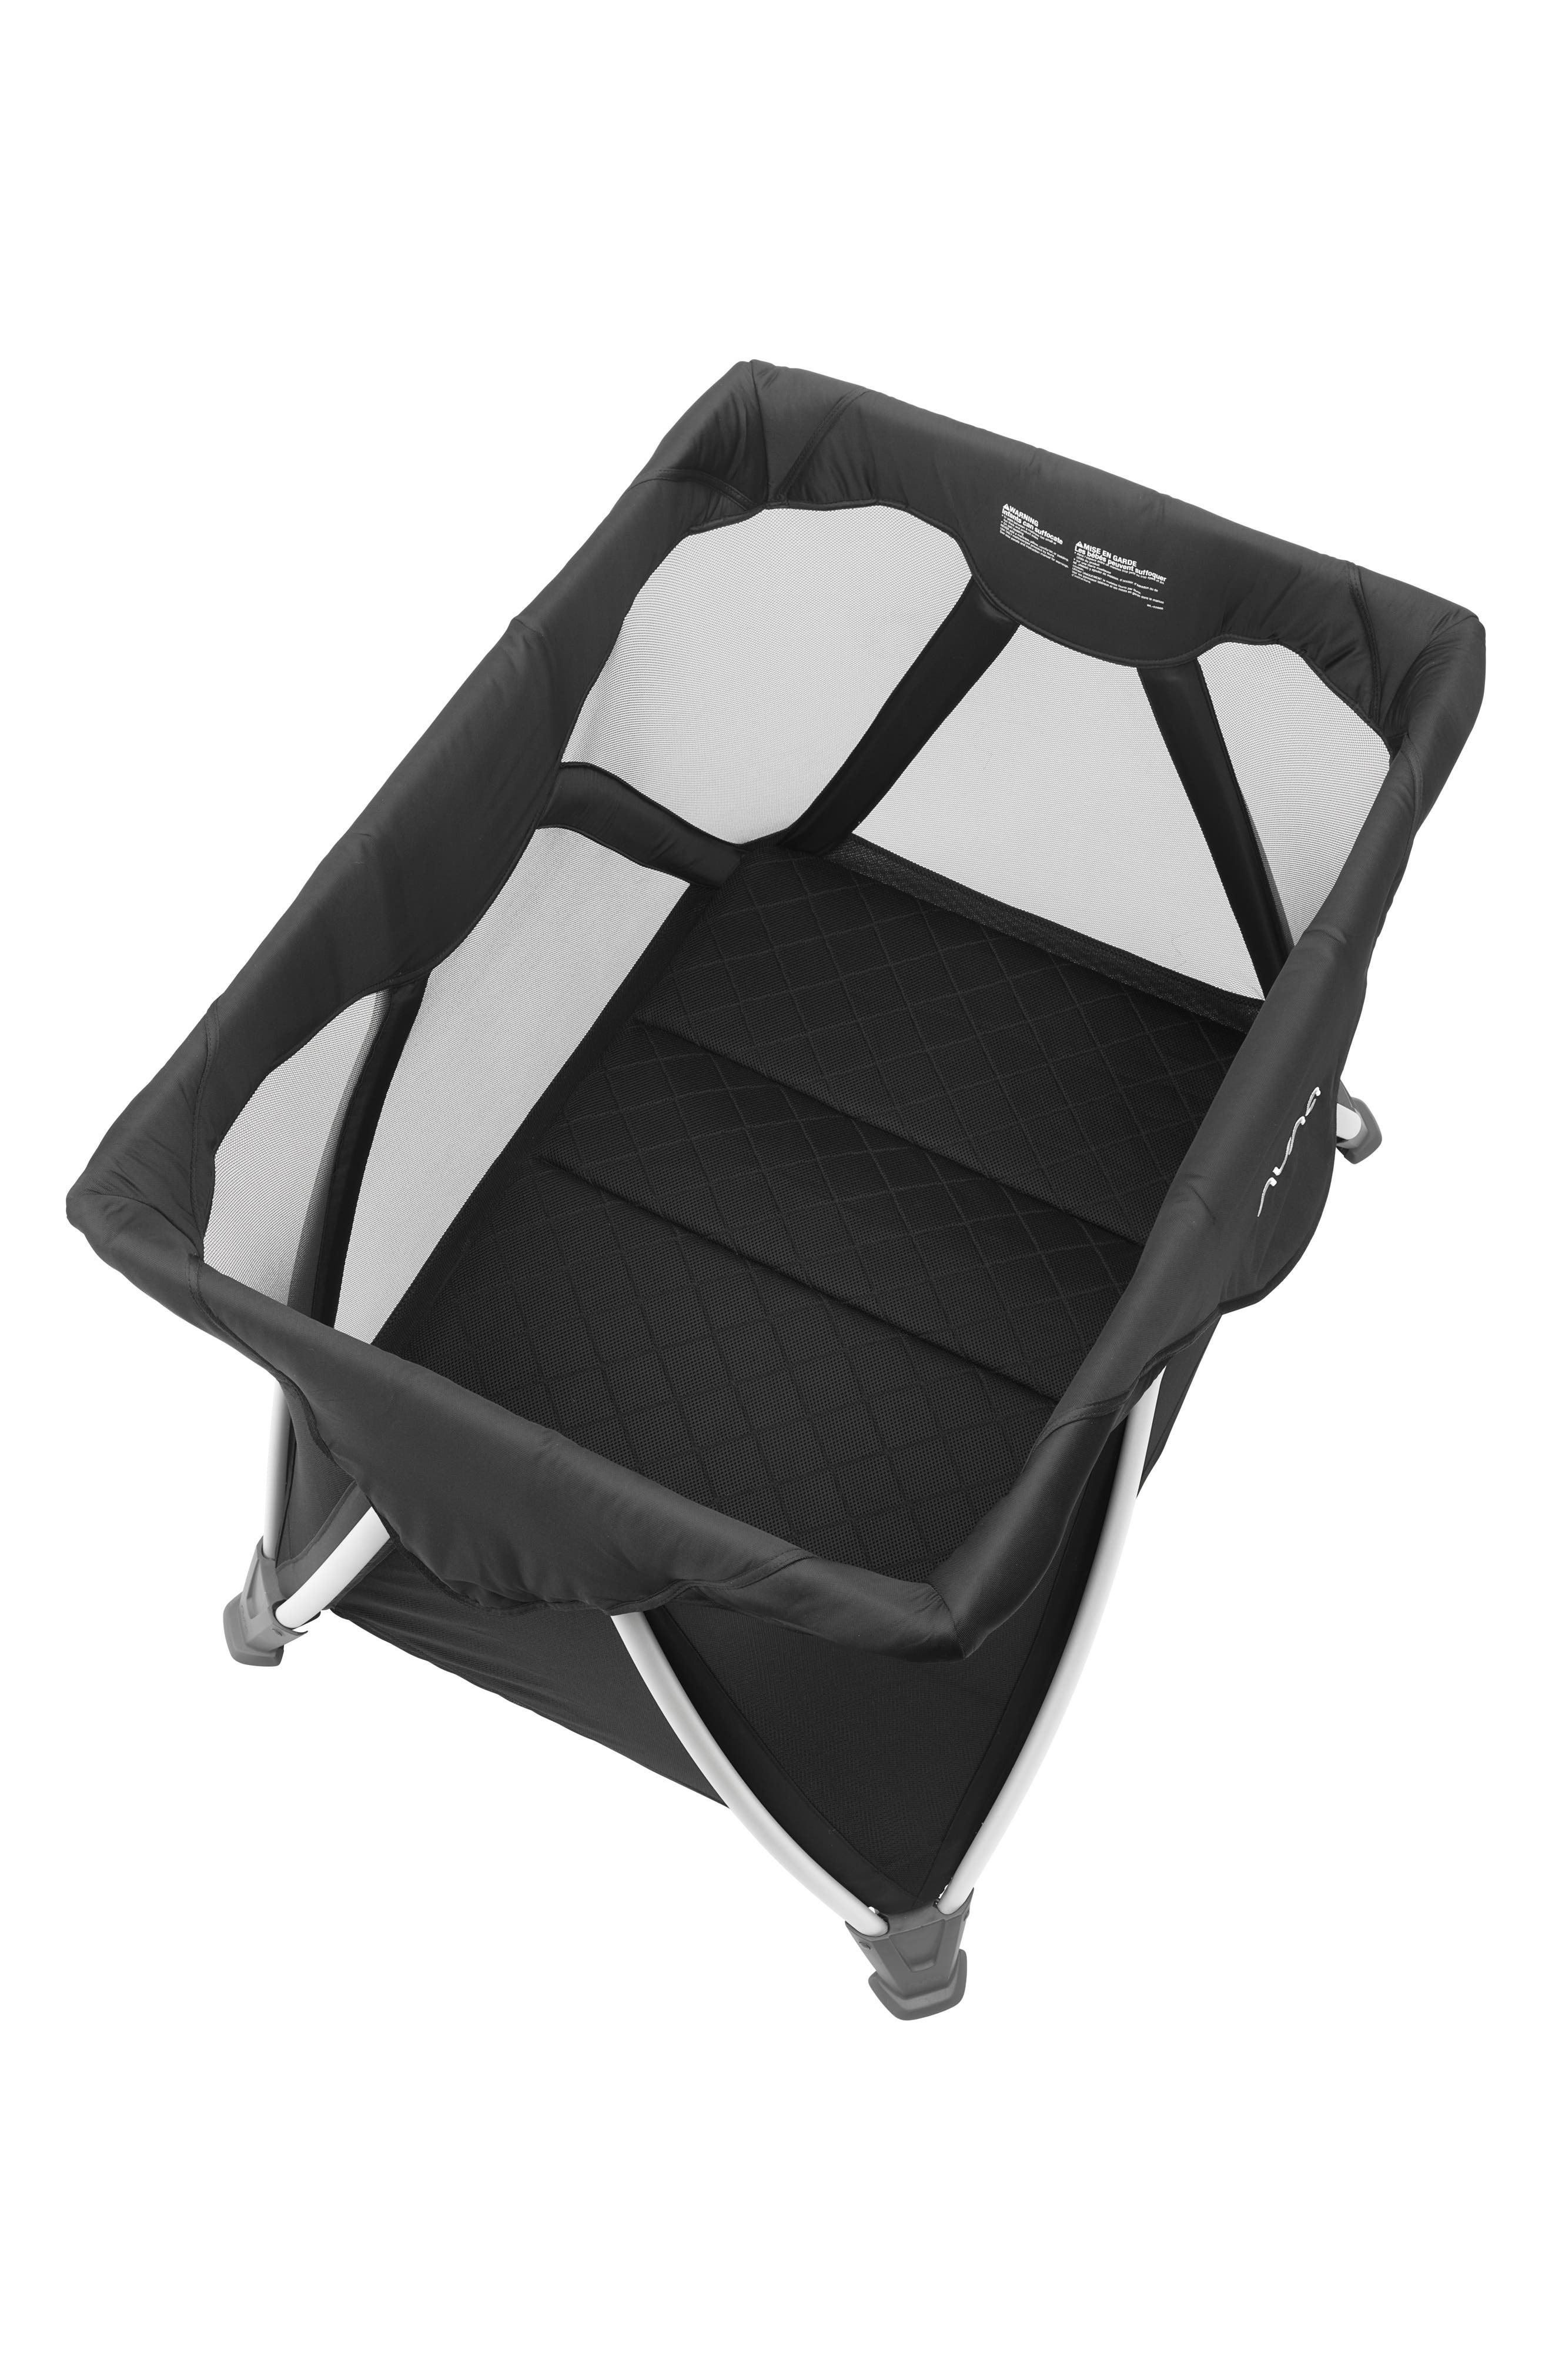 NUNA, SENA<sup>®</sup> Aire Travel Crib, Alternate thumbnail 9, color, CAVIAR